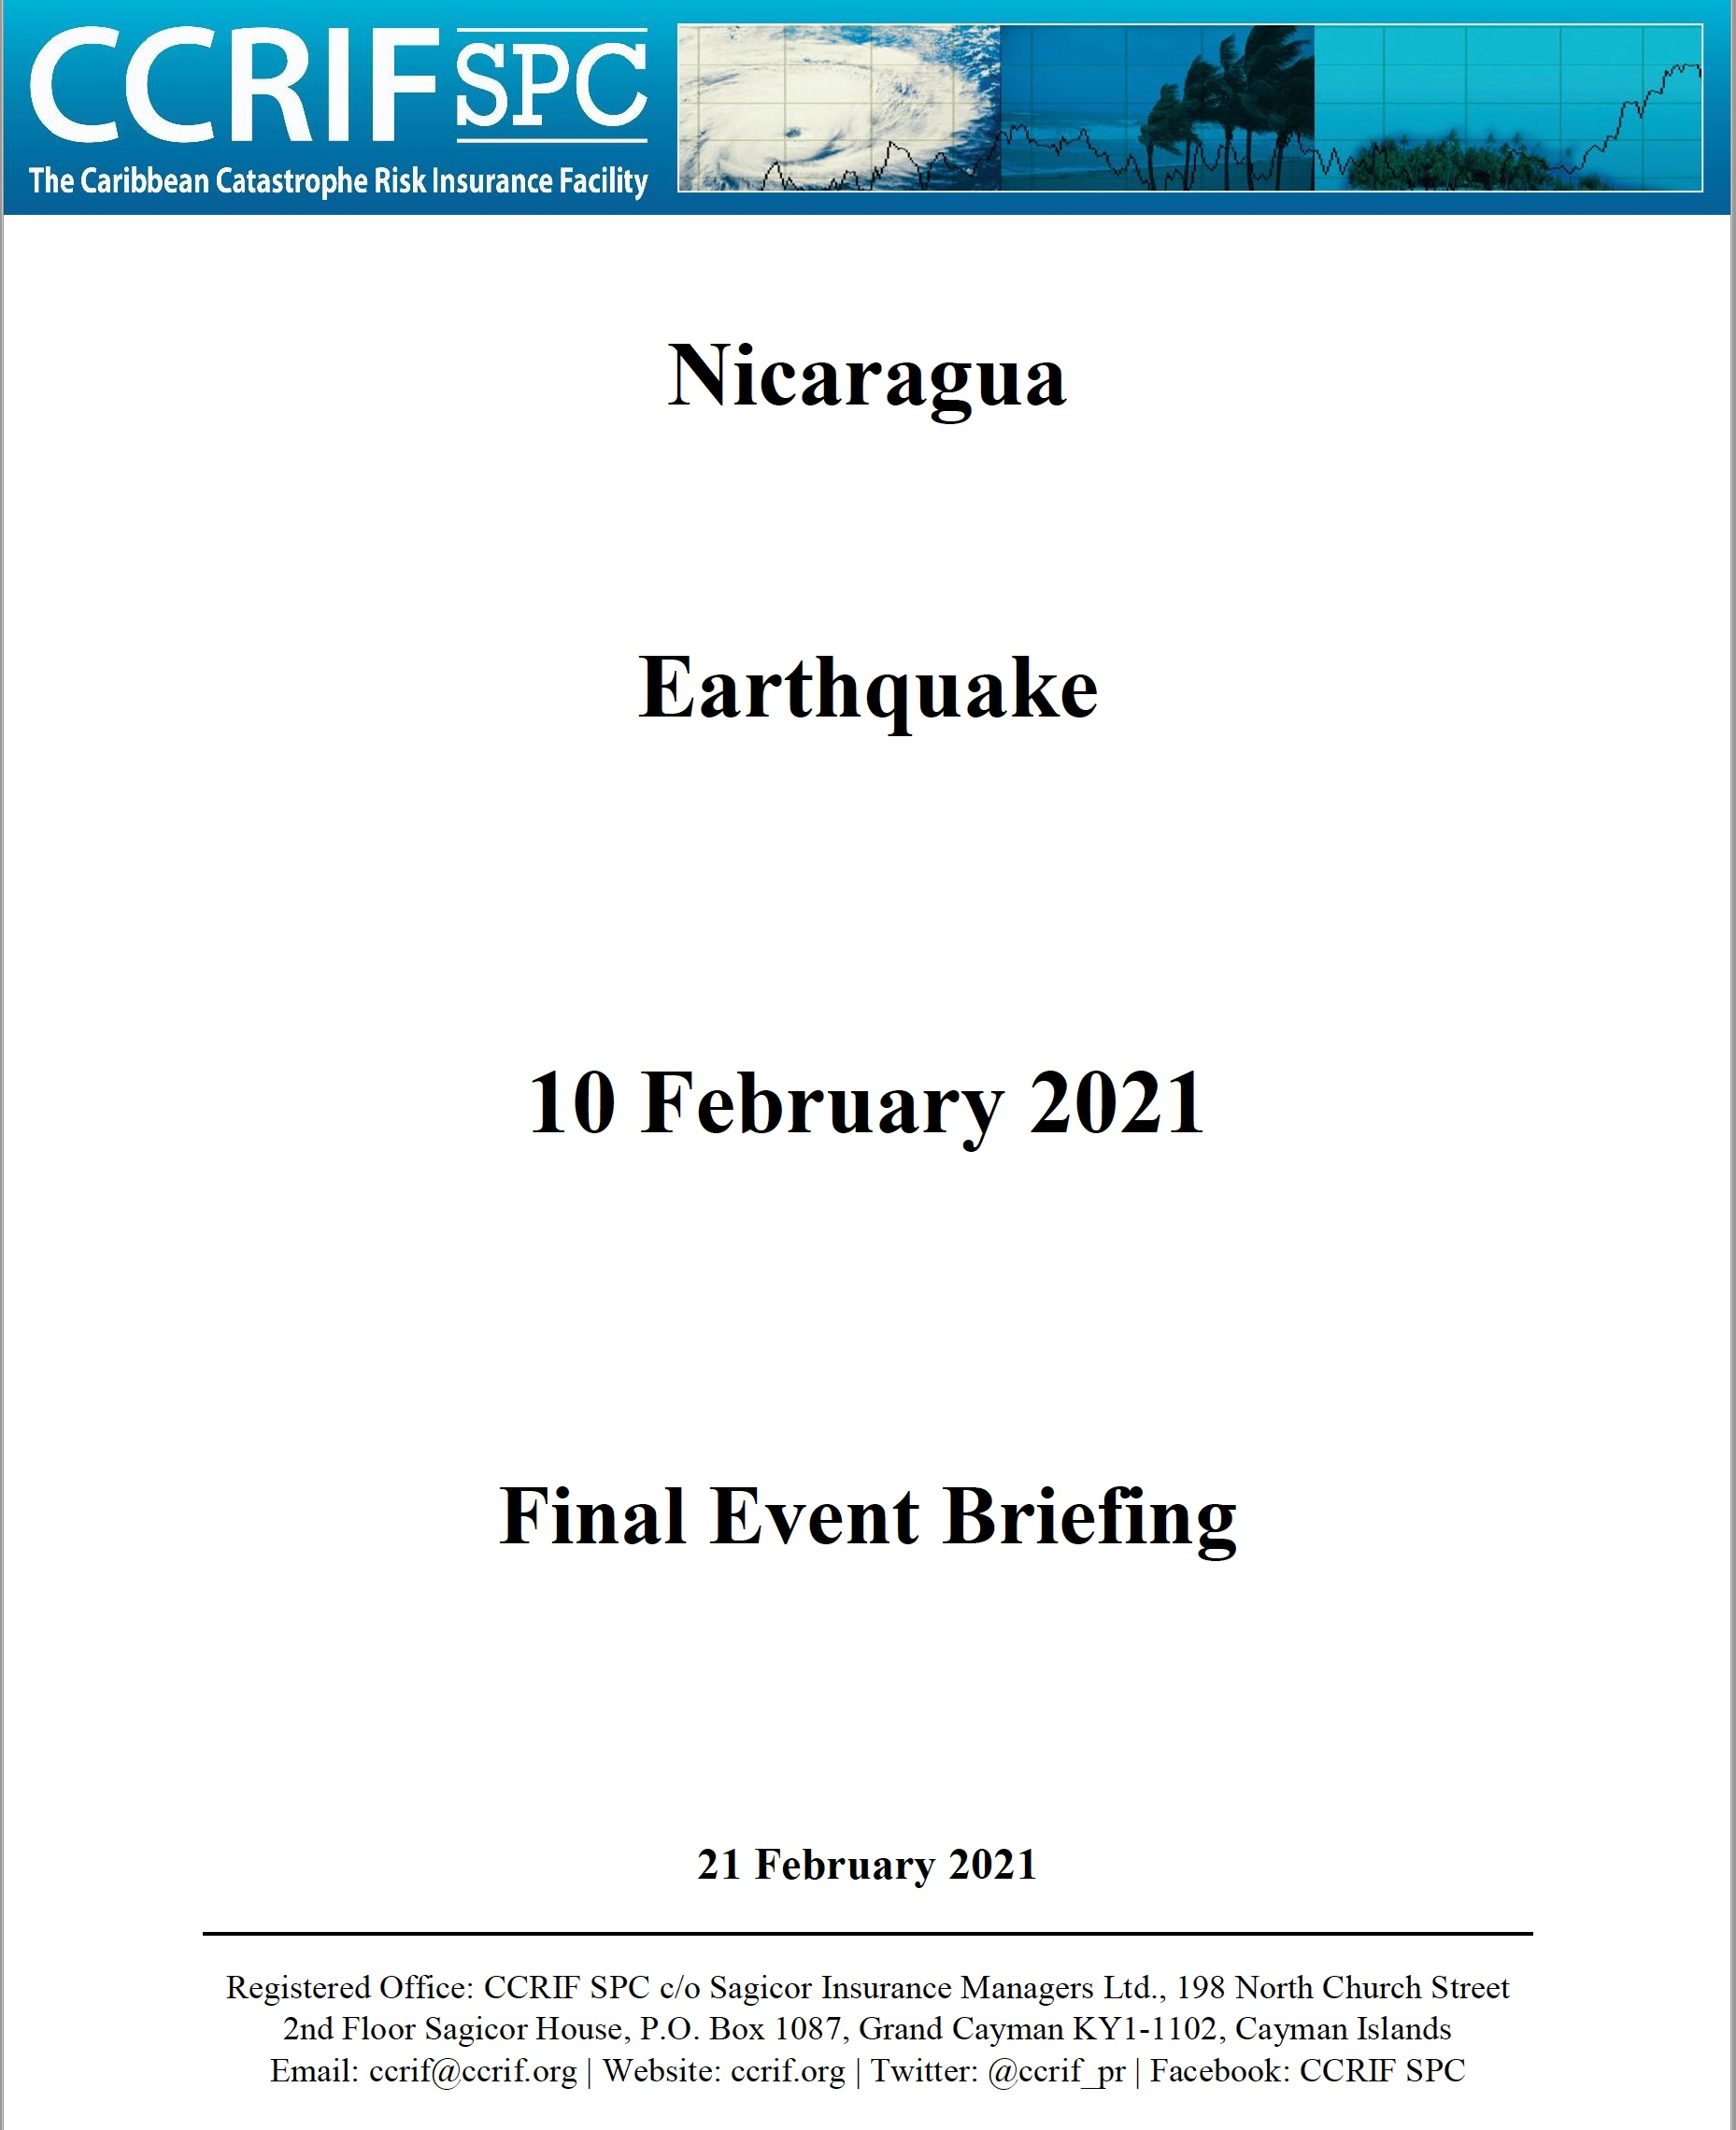 Final Event Briefing - Earthquake - Nicaragua - February 10 2021